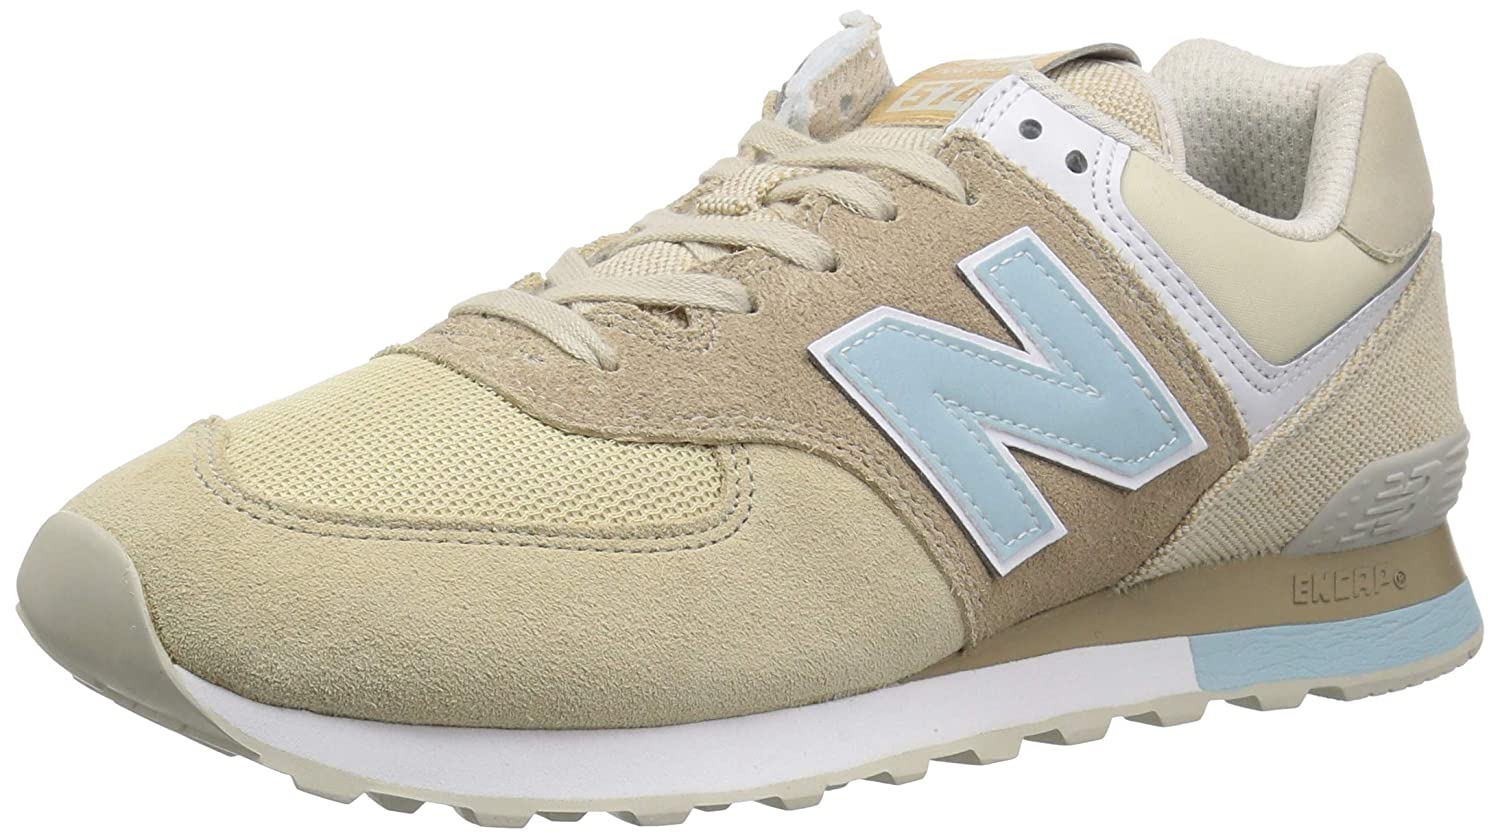 TALLA 40 EU. New Balance Ml574-bsb-d, Zapatillas Unisex Adulto